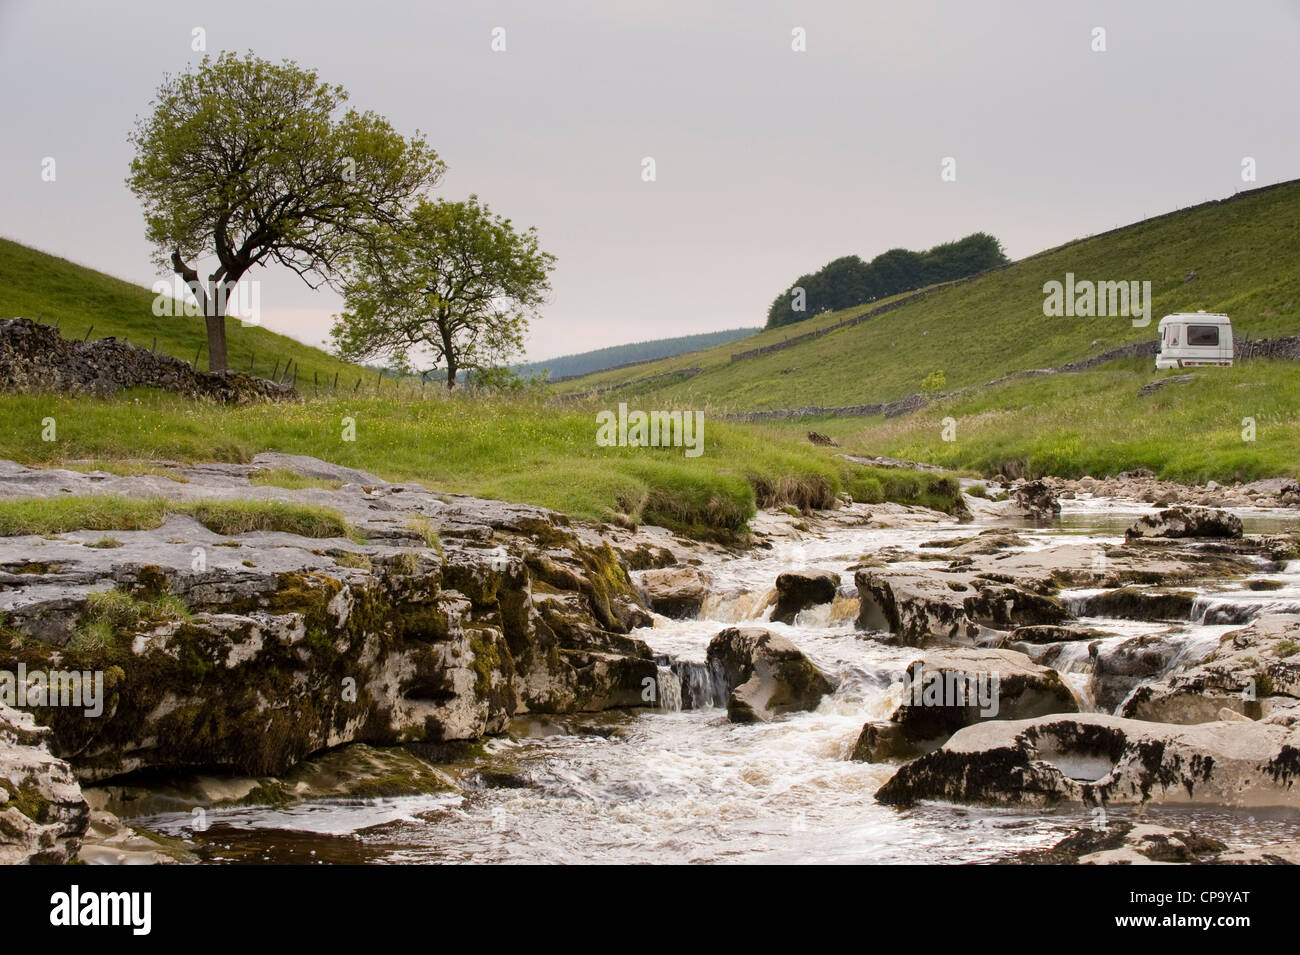 Campervan by River Wharfe, flowing through quiet scenic narrow valley, cascading over limestone rocks - Langstrothdale, Yorkshire Dales, England, UK. Stock Photo